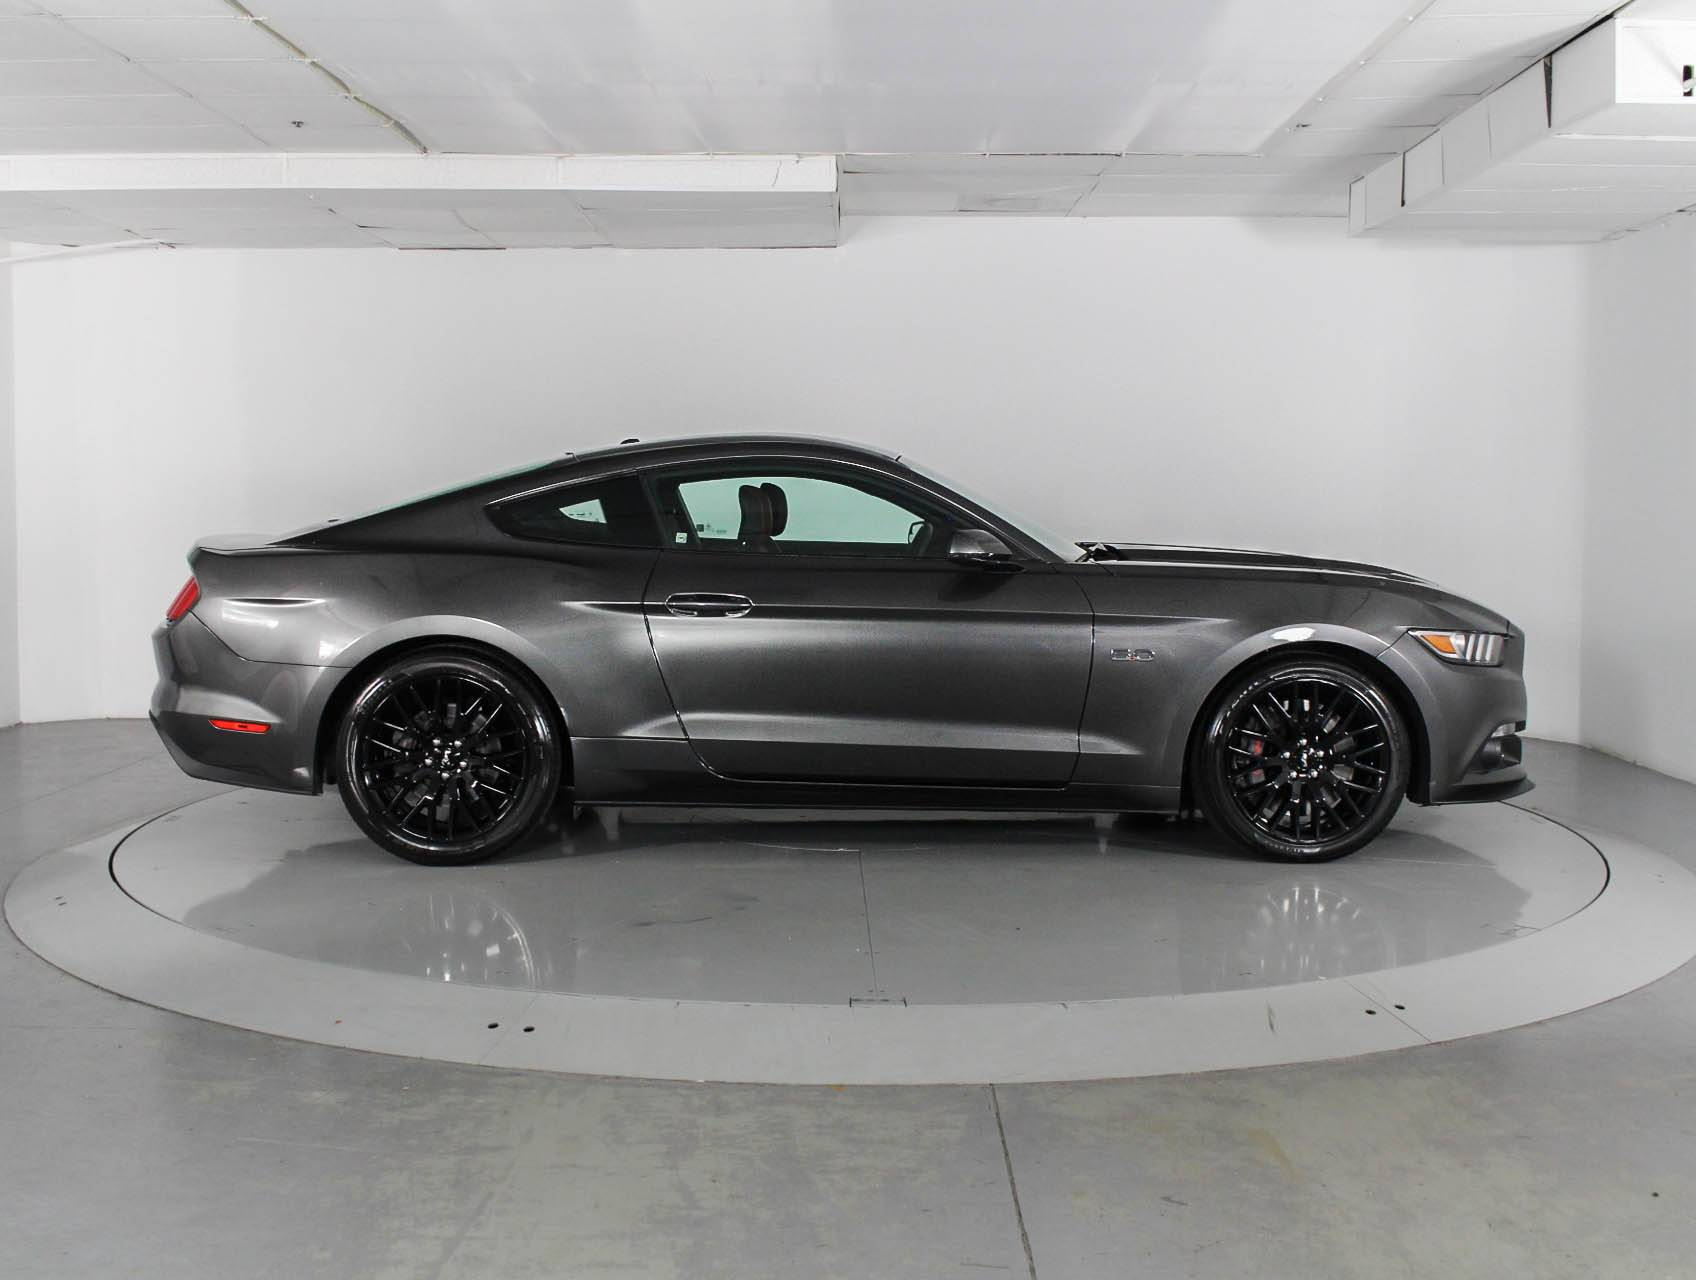 Used 2015 Mustang Gt >> Used 2015 Ford Mustang Gt Premium Coupe For Sale In West Palm Fl